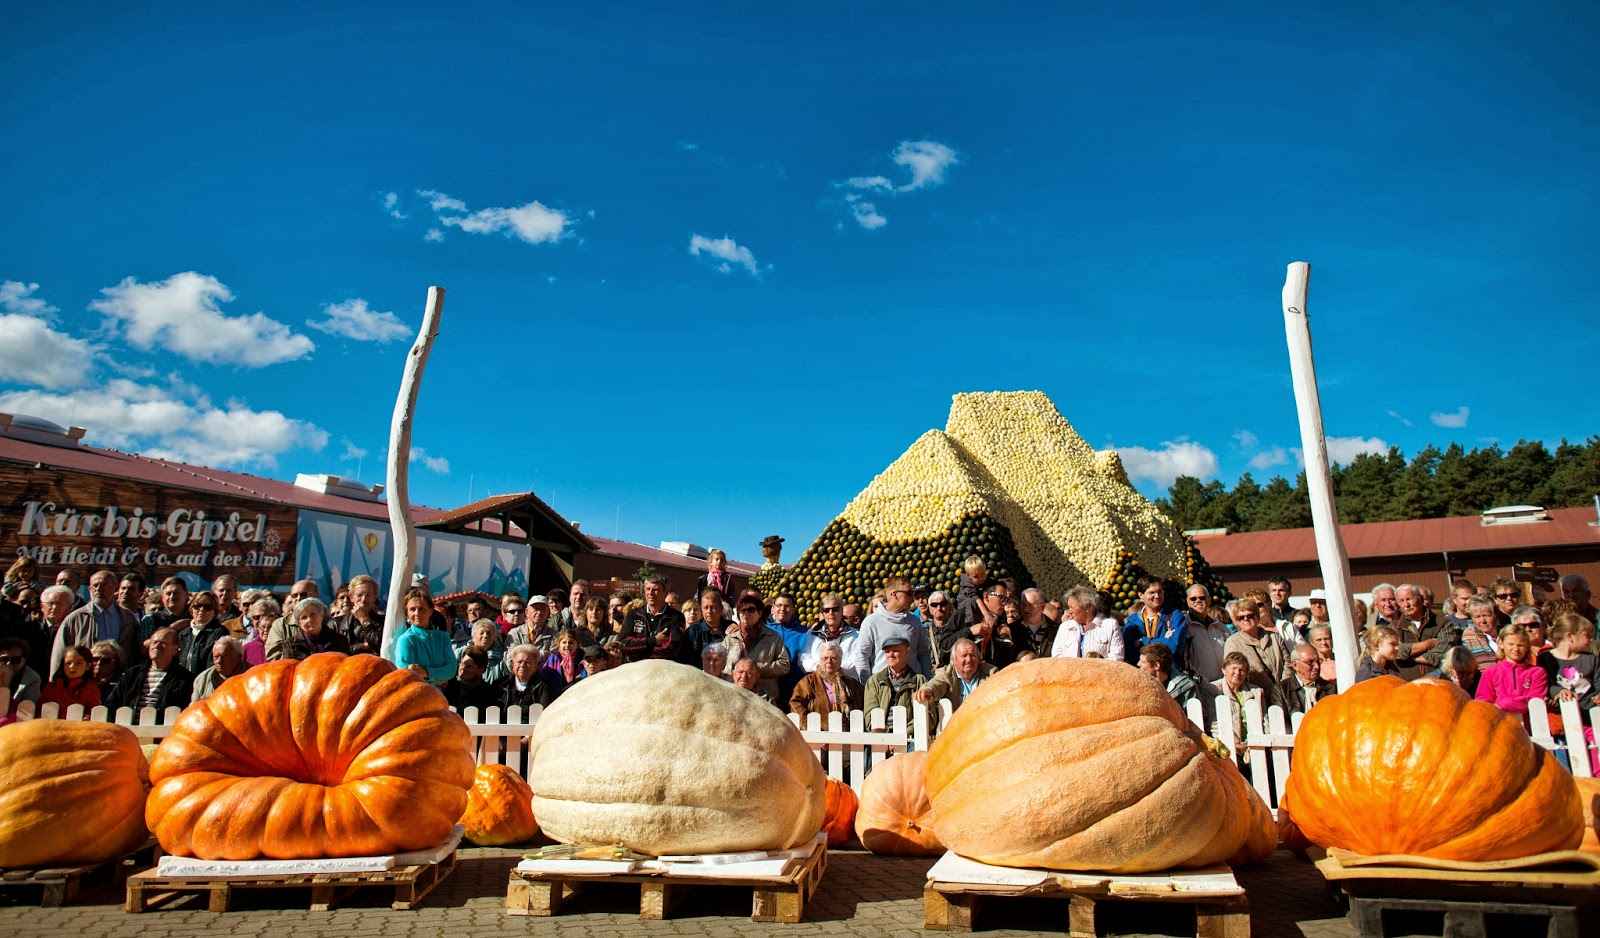 Agriculture, Germany, Klaistow, Pumkpin Weight Championship, Pumpkin, Competition, Vegetable, World Biggest Pumpkin, Business, News,